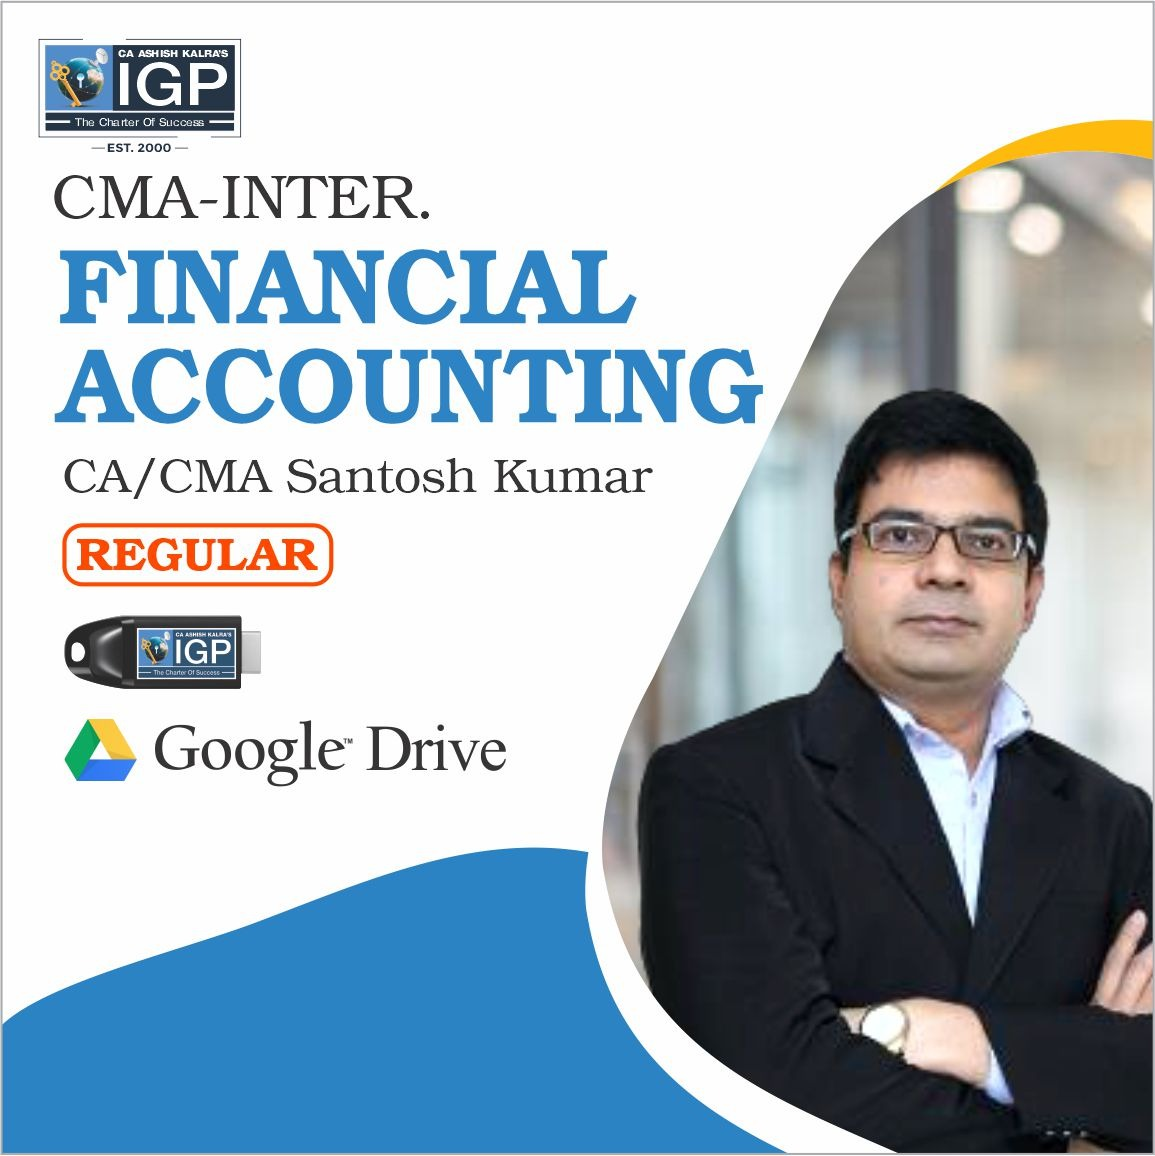 CMA-ACCOUNTS-CA/CMA SANTOSH KUMAR